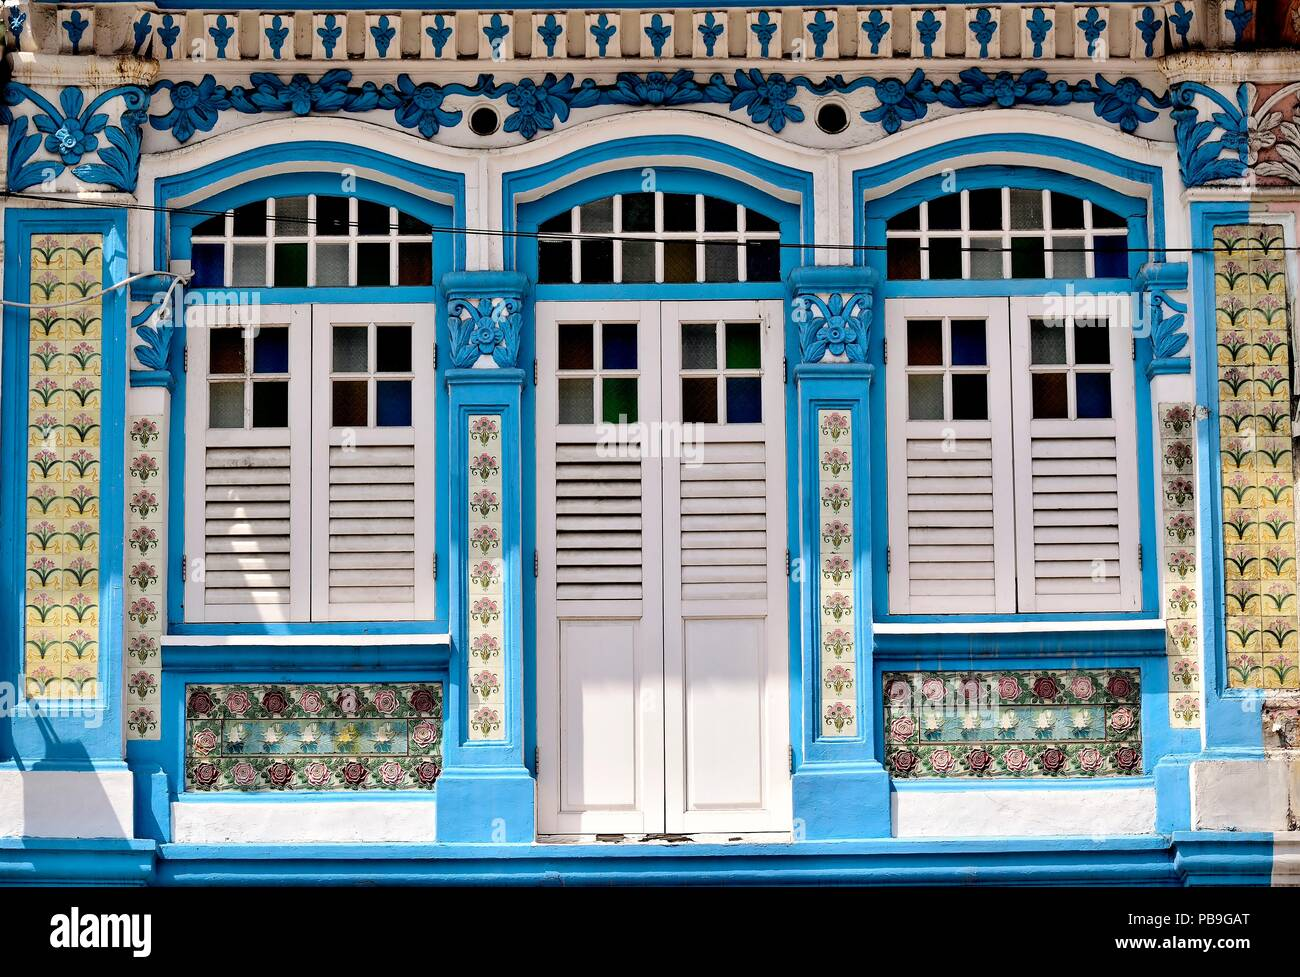 Peranakan House Stock Photos & Peranakan House Stock Images - Alamy